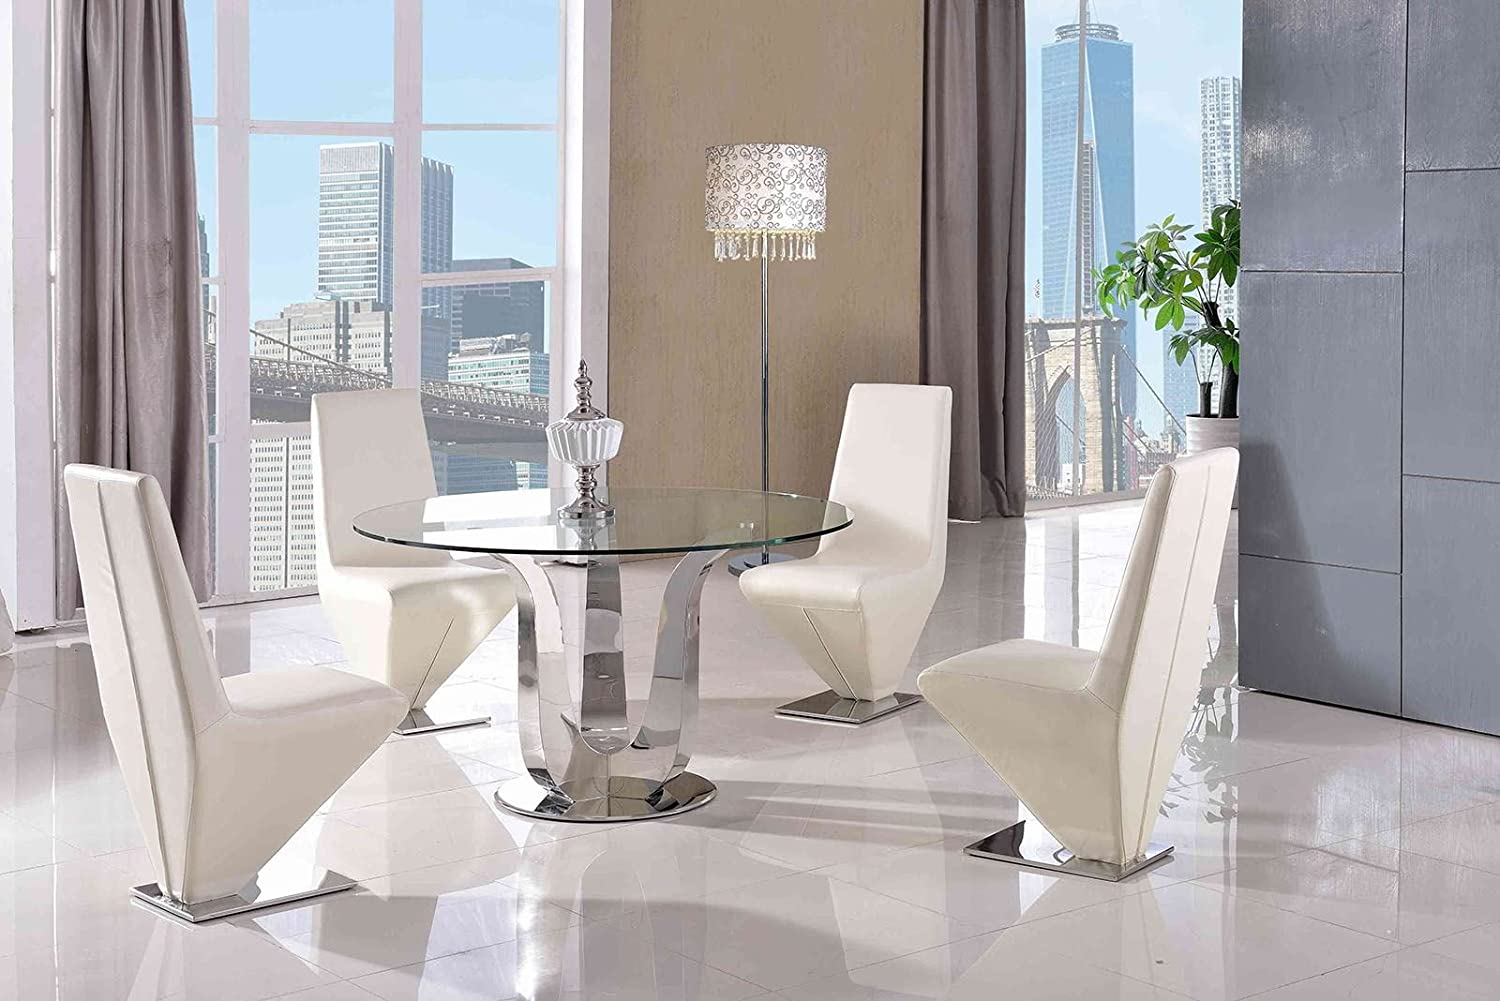 Modern furniture direct naples 130cm round steel glass dining table 4 faux leather ivory chairs 130cm diameter tempered glass steel fast